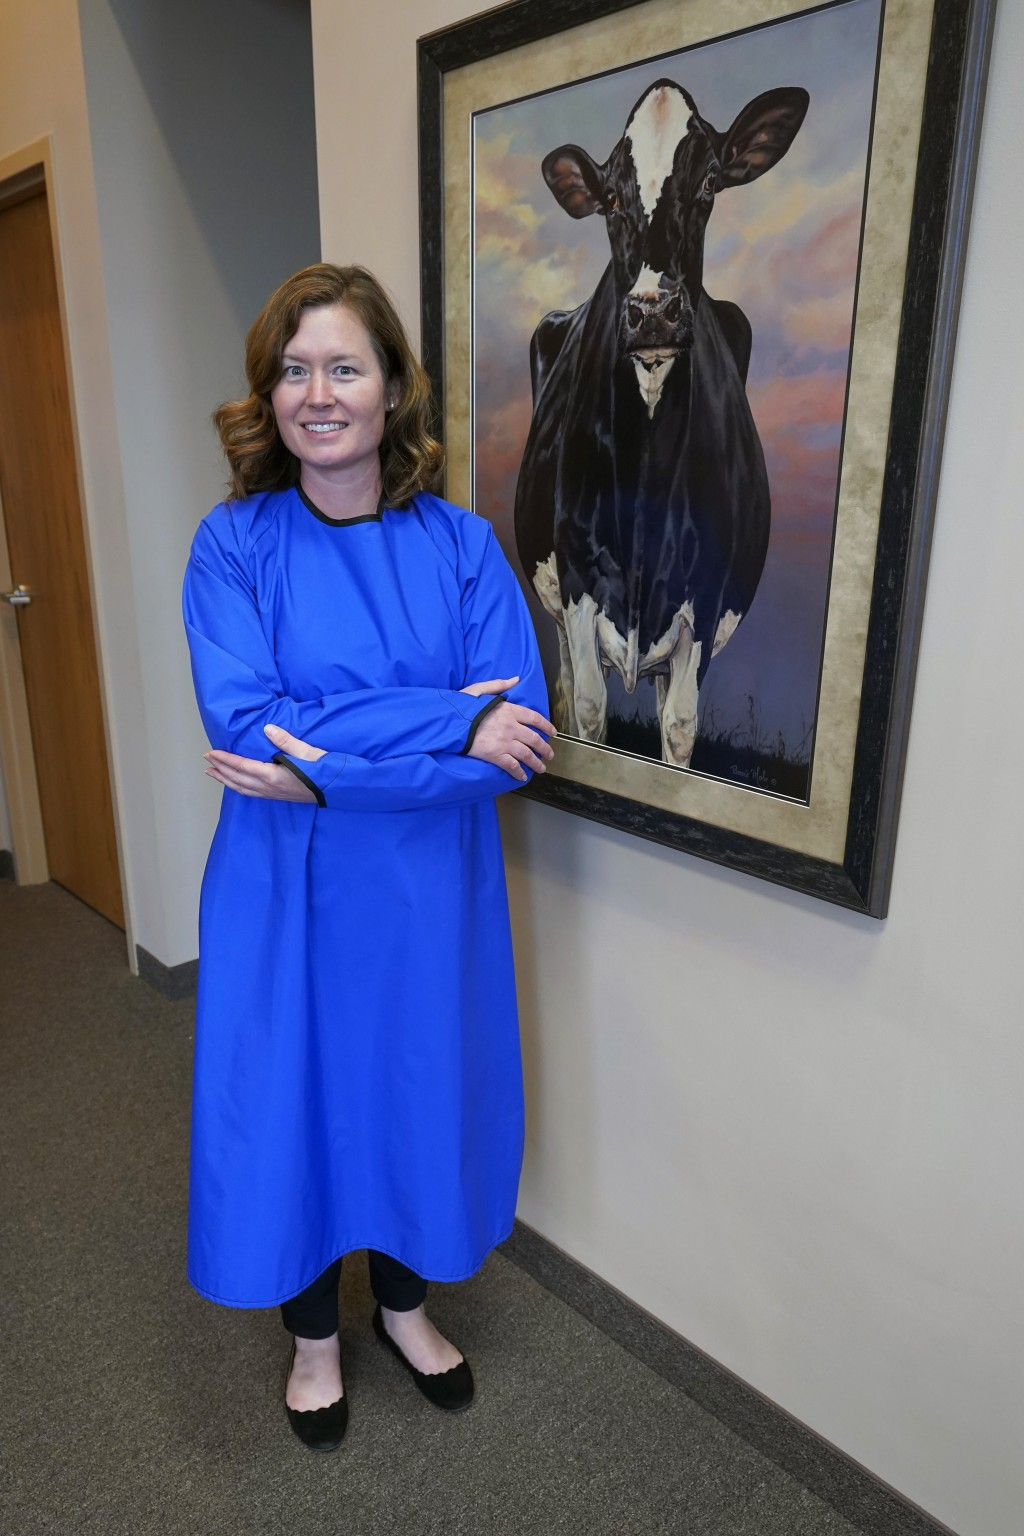 Ann Quigley poses Tuesday, Dec. 15, 2020, in a waterproof gown intended for milking cows made by Udder Tech Inc., a Rosemount, Minnesota-based dairy s...